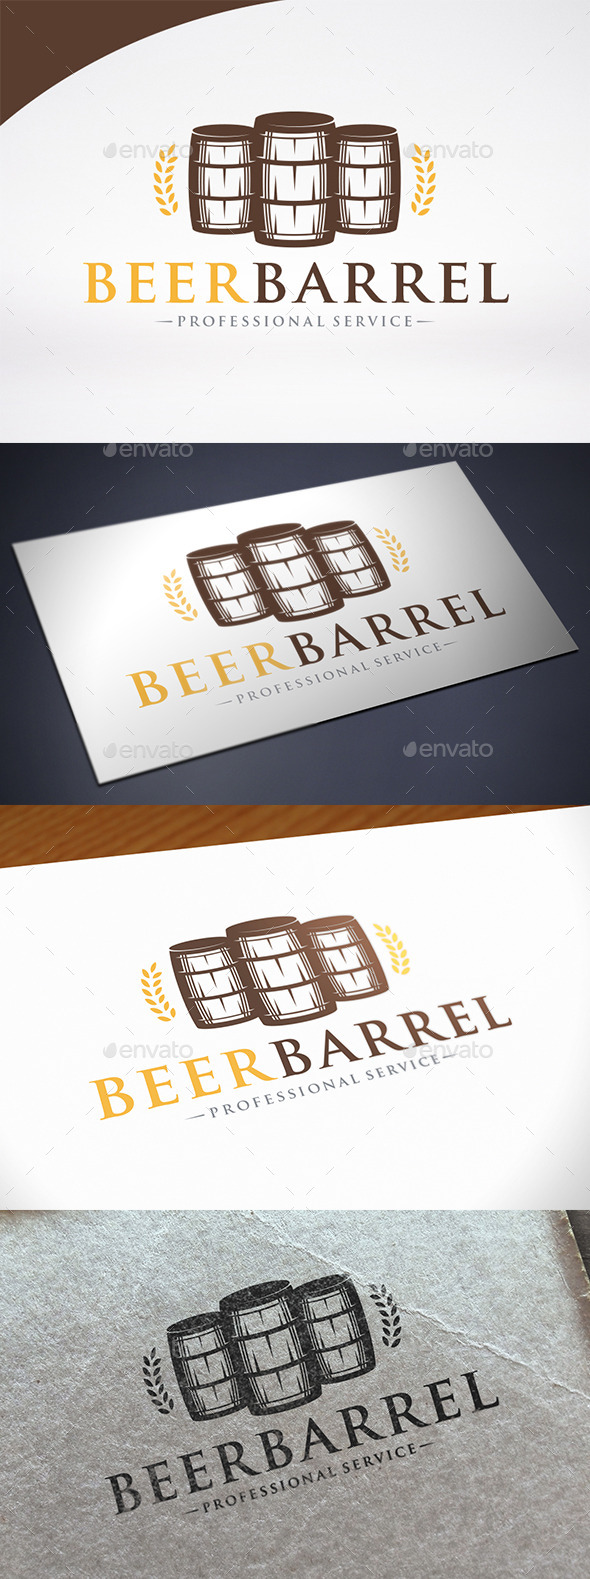 Barrel Logo Template - Objects Logo Templates